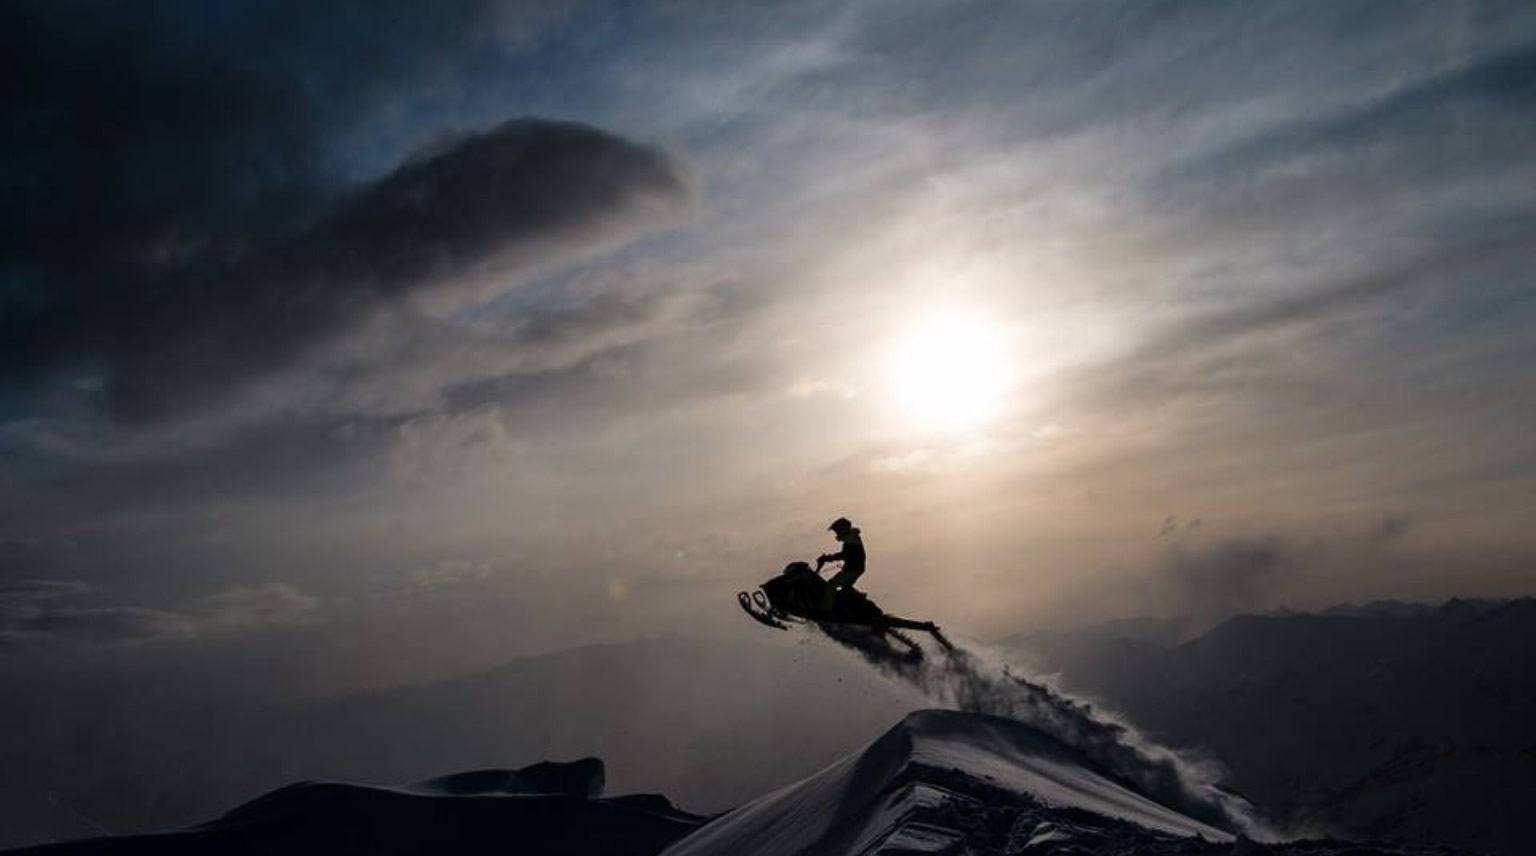 A snowmobiler jumping with the sunset in the background.